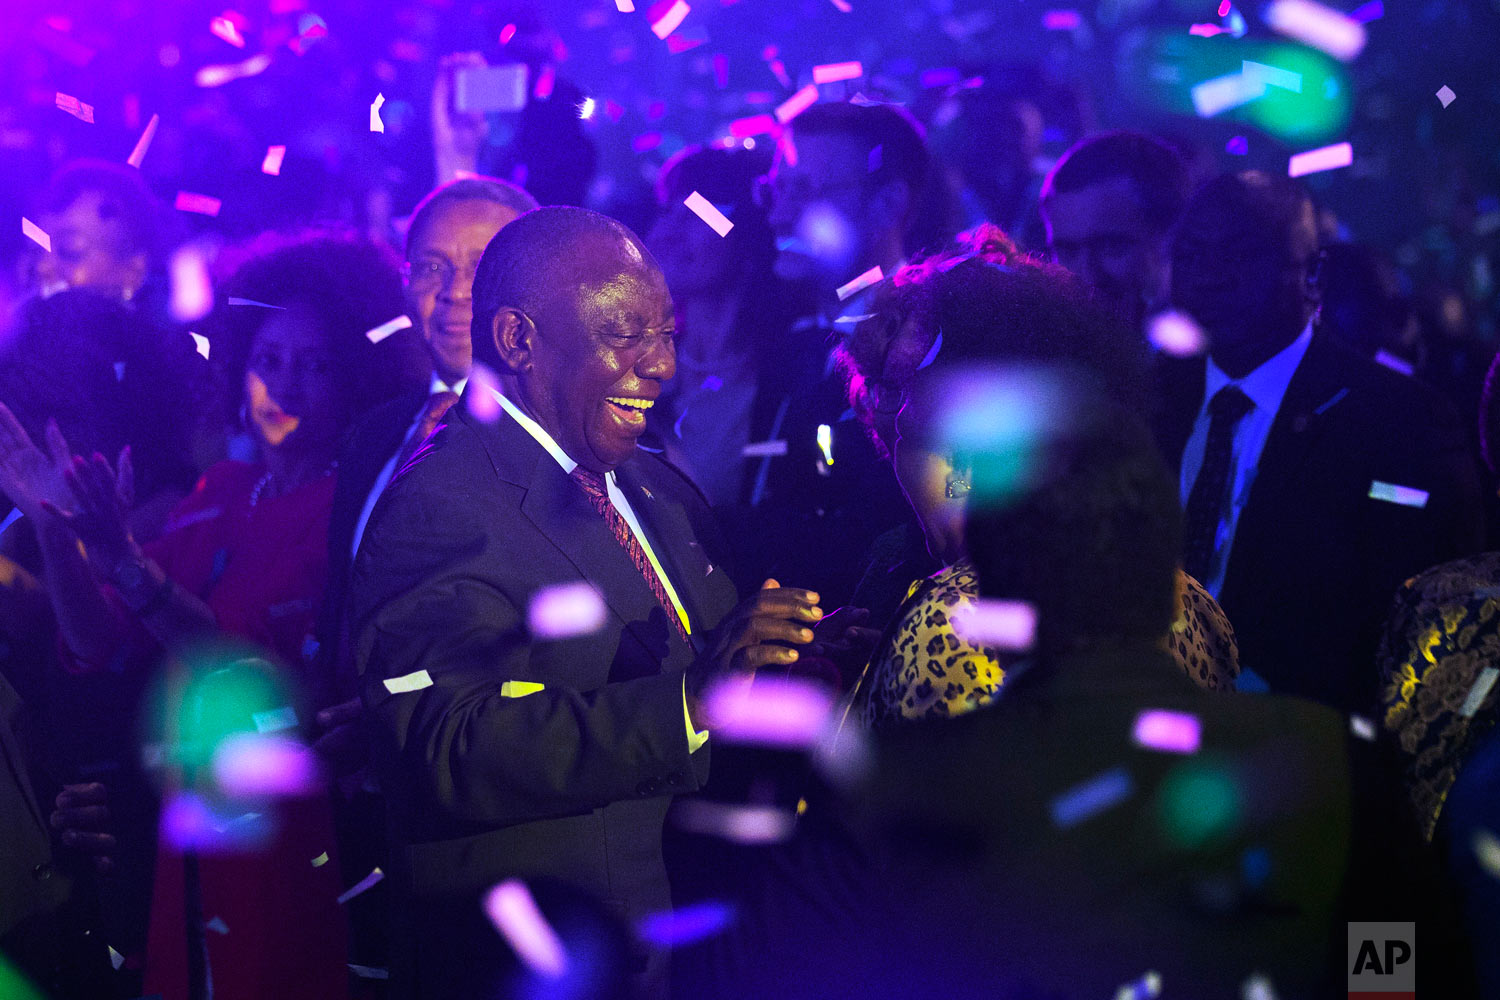 South Africa President Cyril Ramaphosa celebrates after the Independent Electoral Commission announced the final results in South Africa's general election in Pretoria, May 11, 2019. (AP Photo/Jerome Delay)